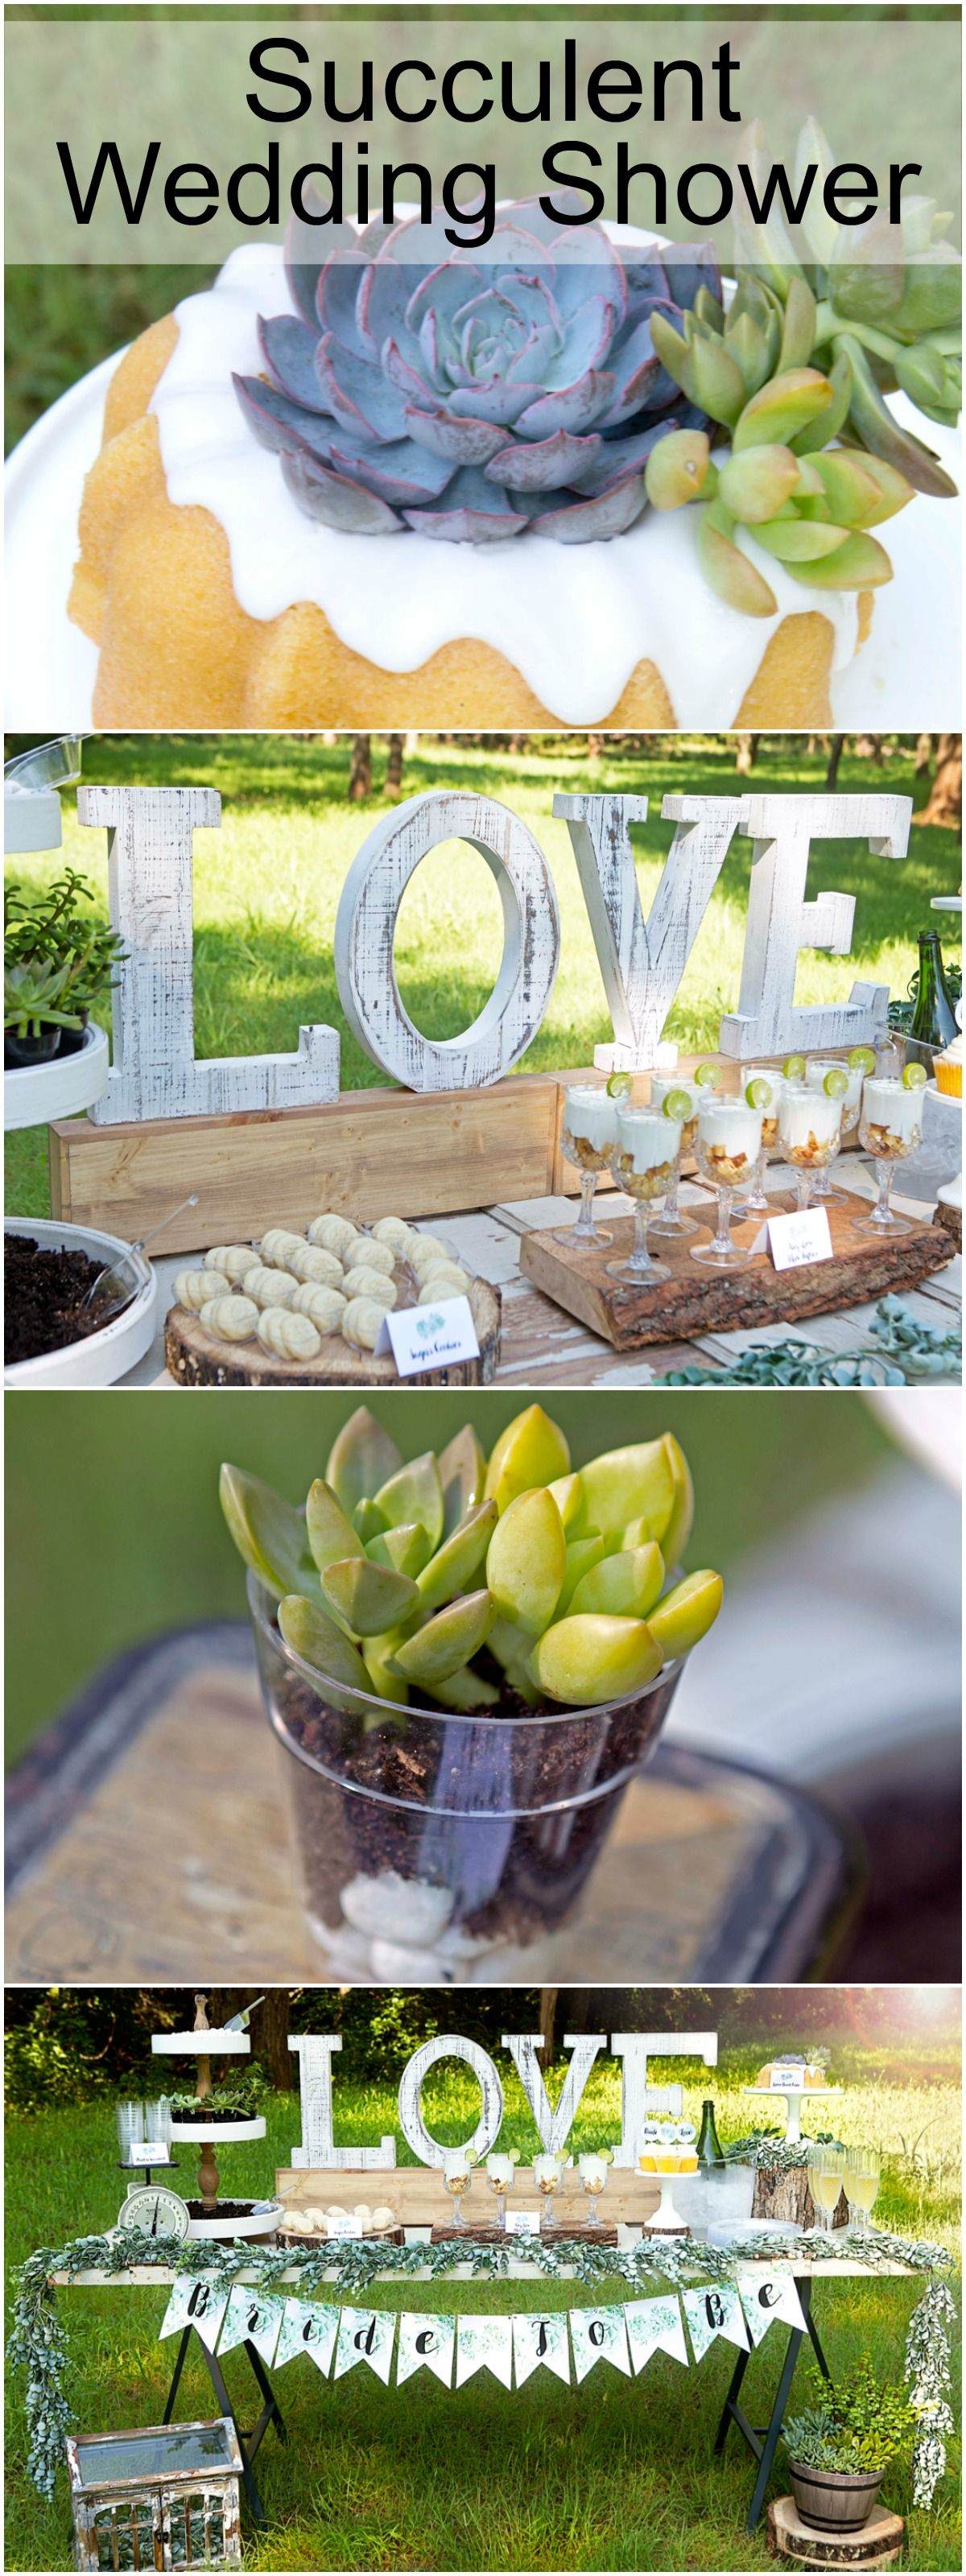 Rustic Wedding Shower - Succulent Wedding Shower - Let Your Love Grow